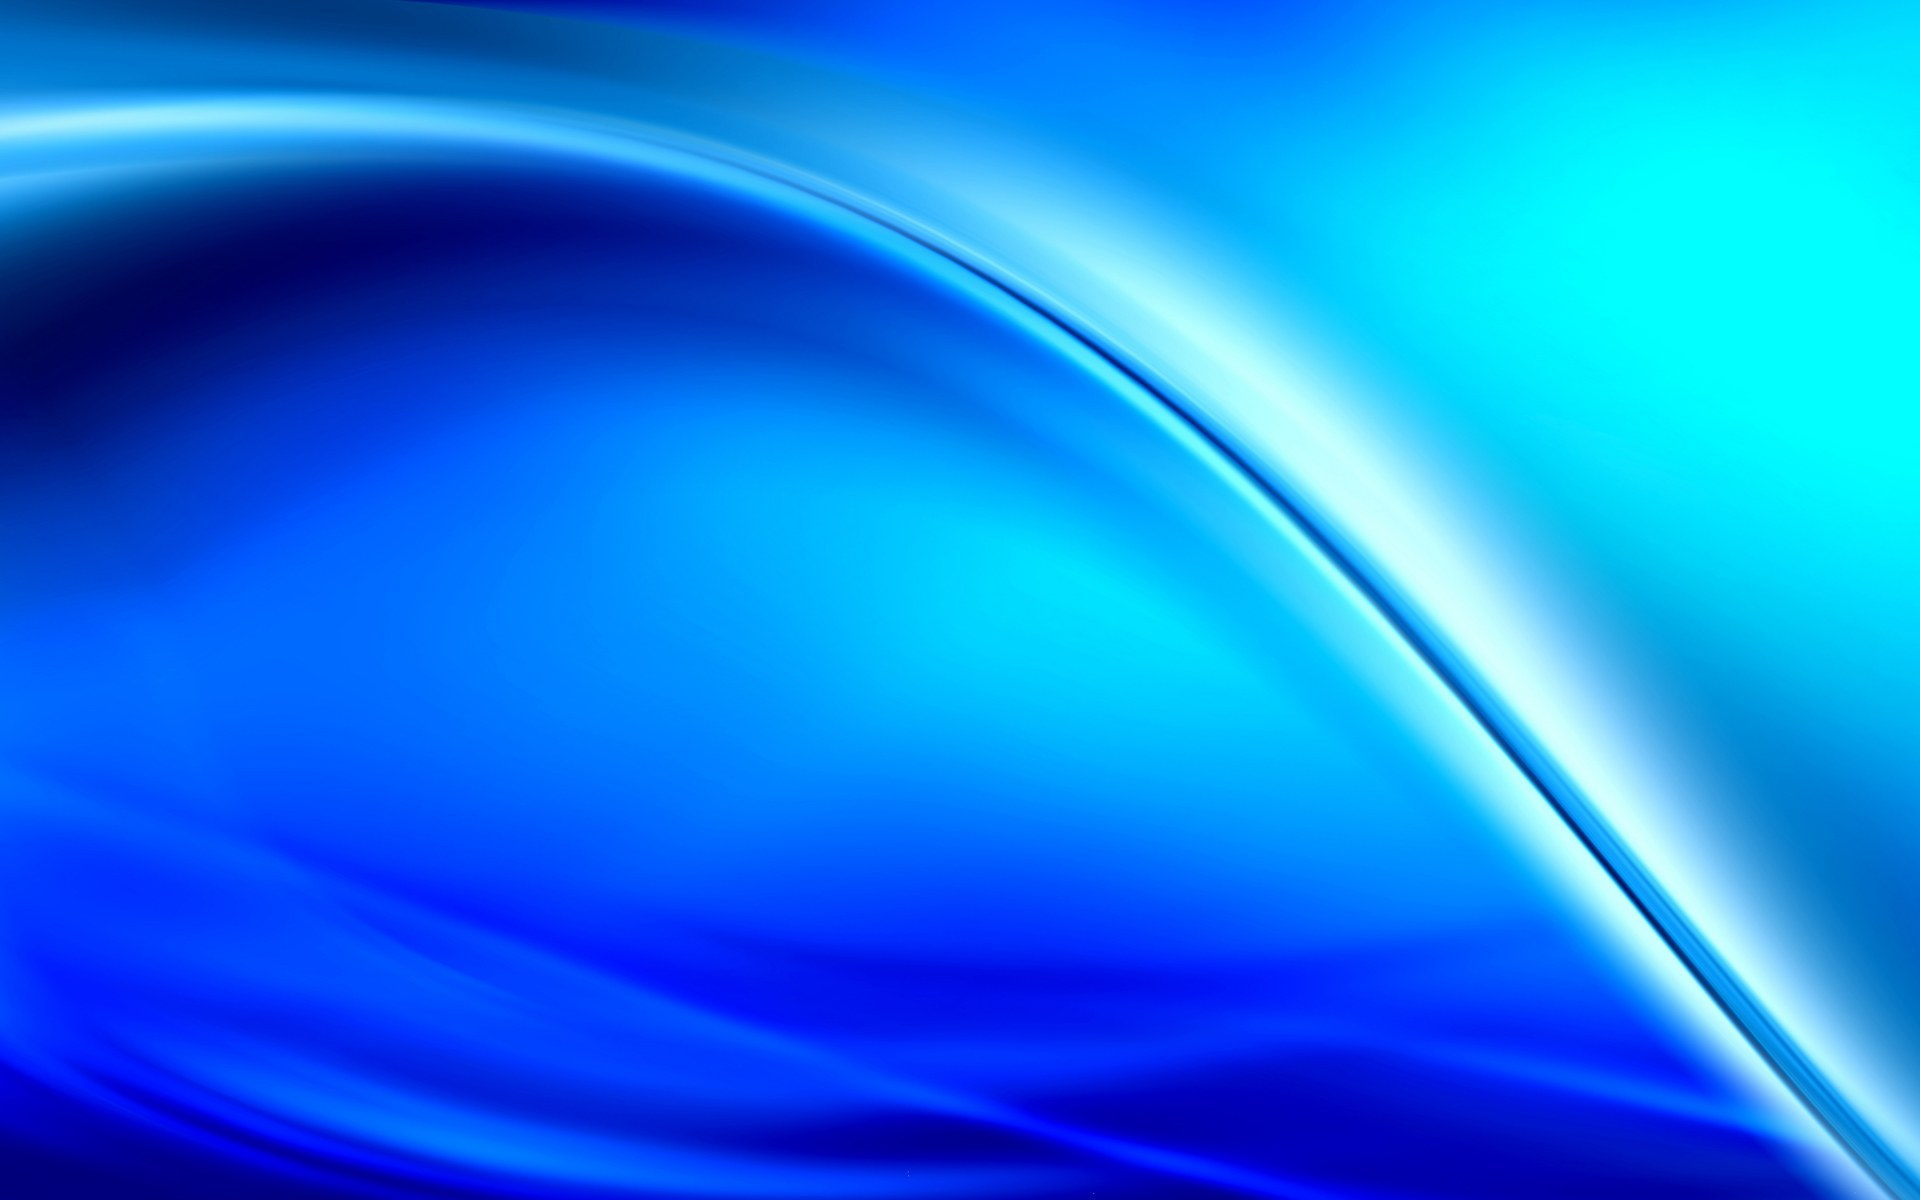 Abstract Blue 2126 Hd Wallpapers in Abstract   Imagescicom 1920x1200